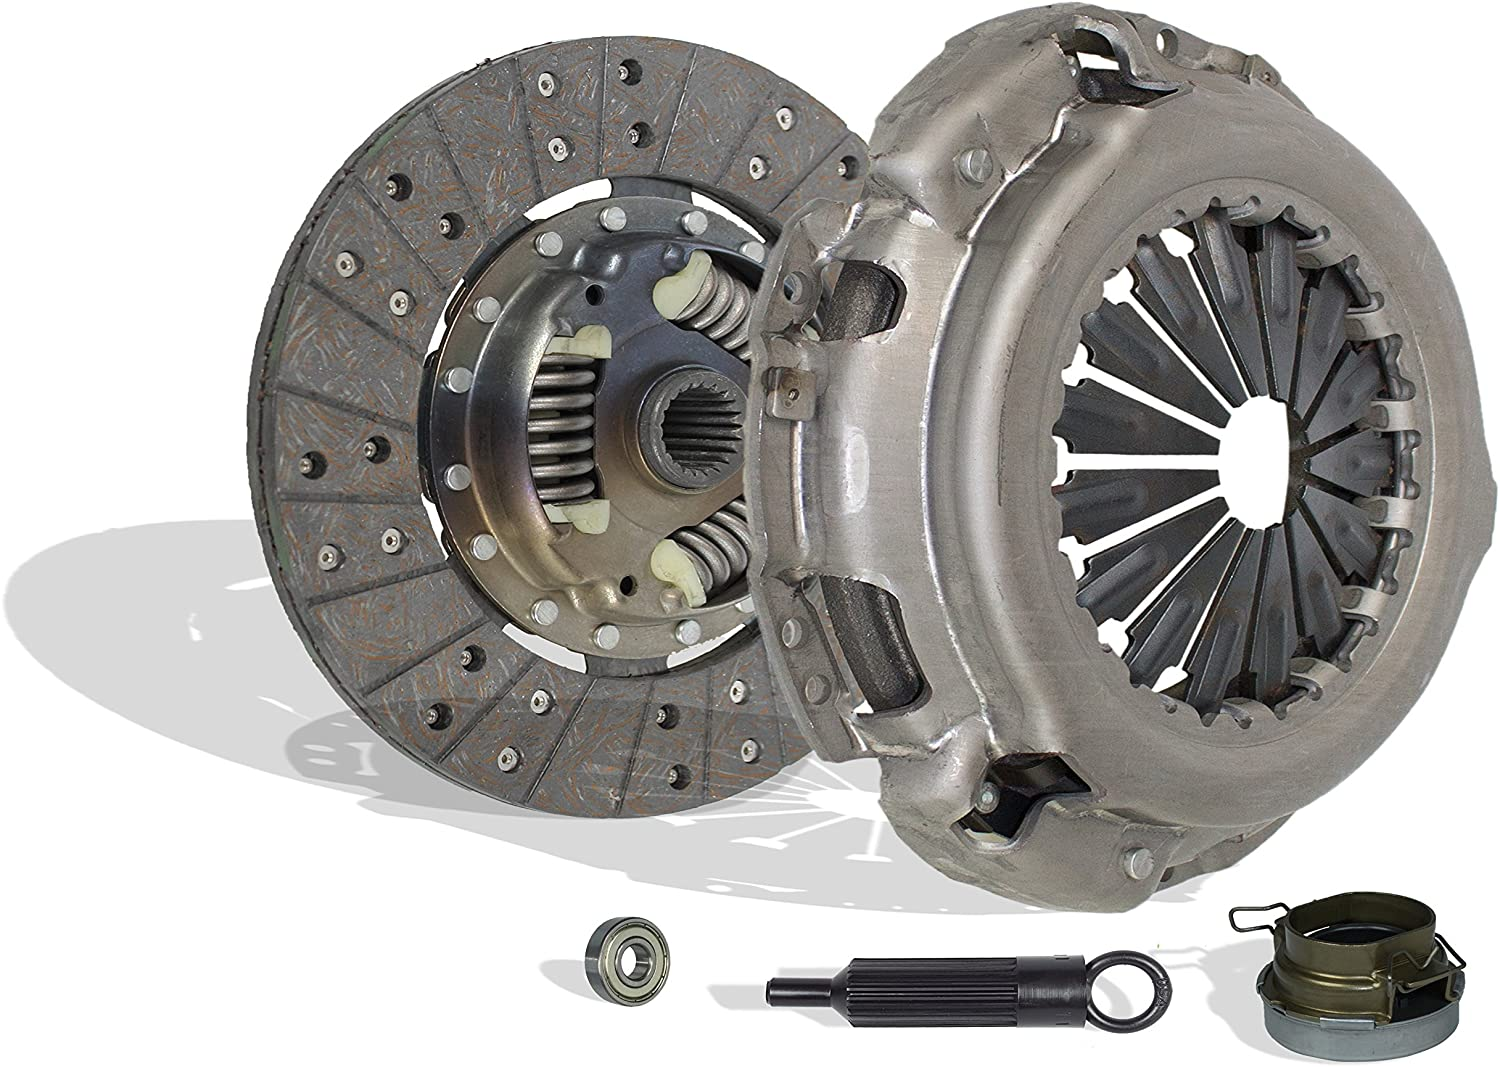 Clutch Kit Set Works With Toyota Tacoma T100 Base Pre Runer SR5 One-Ton Standard Extended Cab Pickup 1993-2011 2.7L l4 GAS DOHC 3.0L V6 GAS SOHC Naturally Aspirated (2Wd; 4Wd)